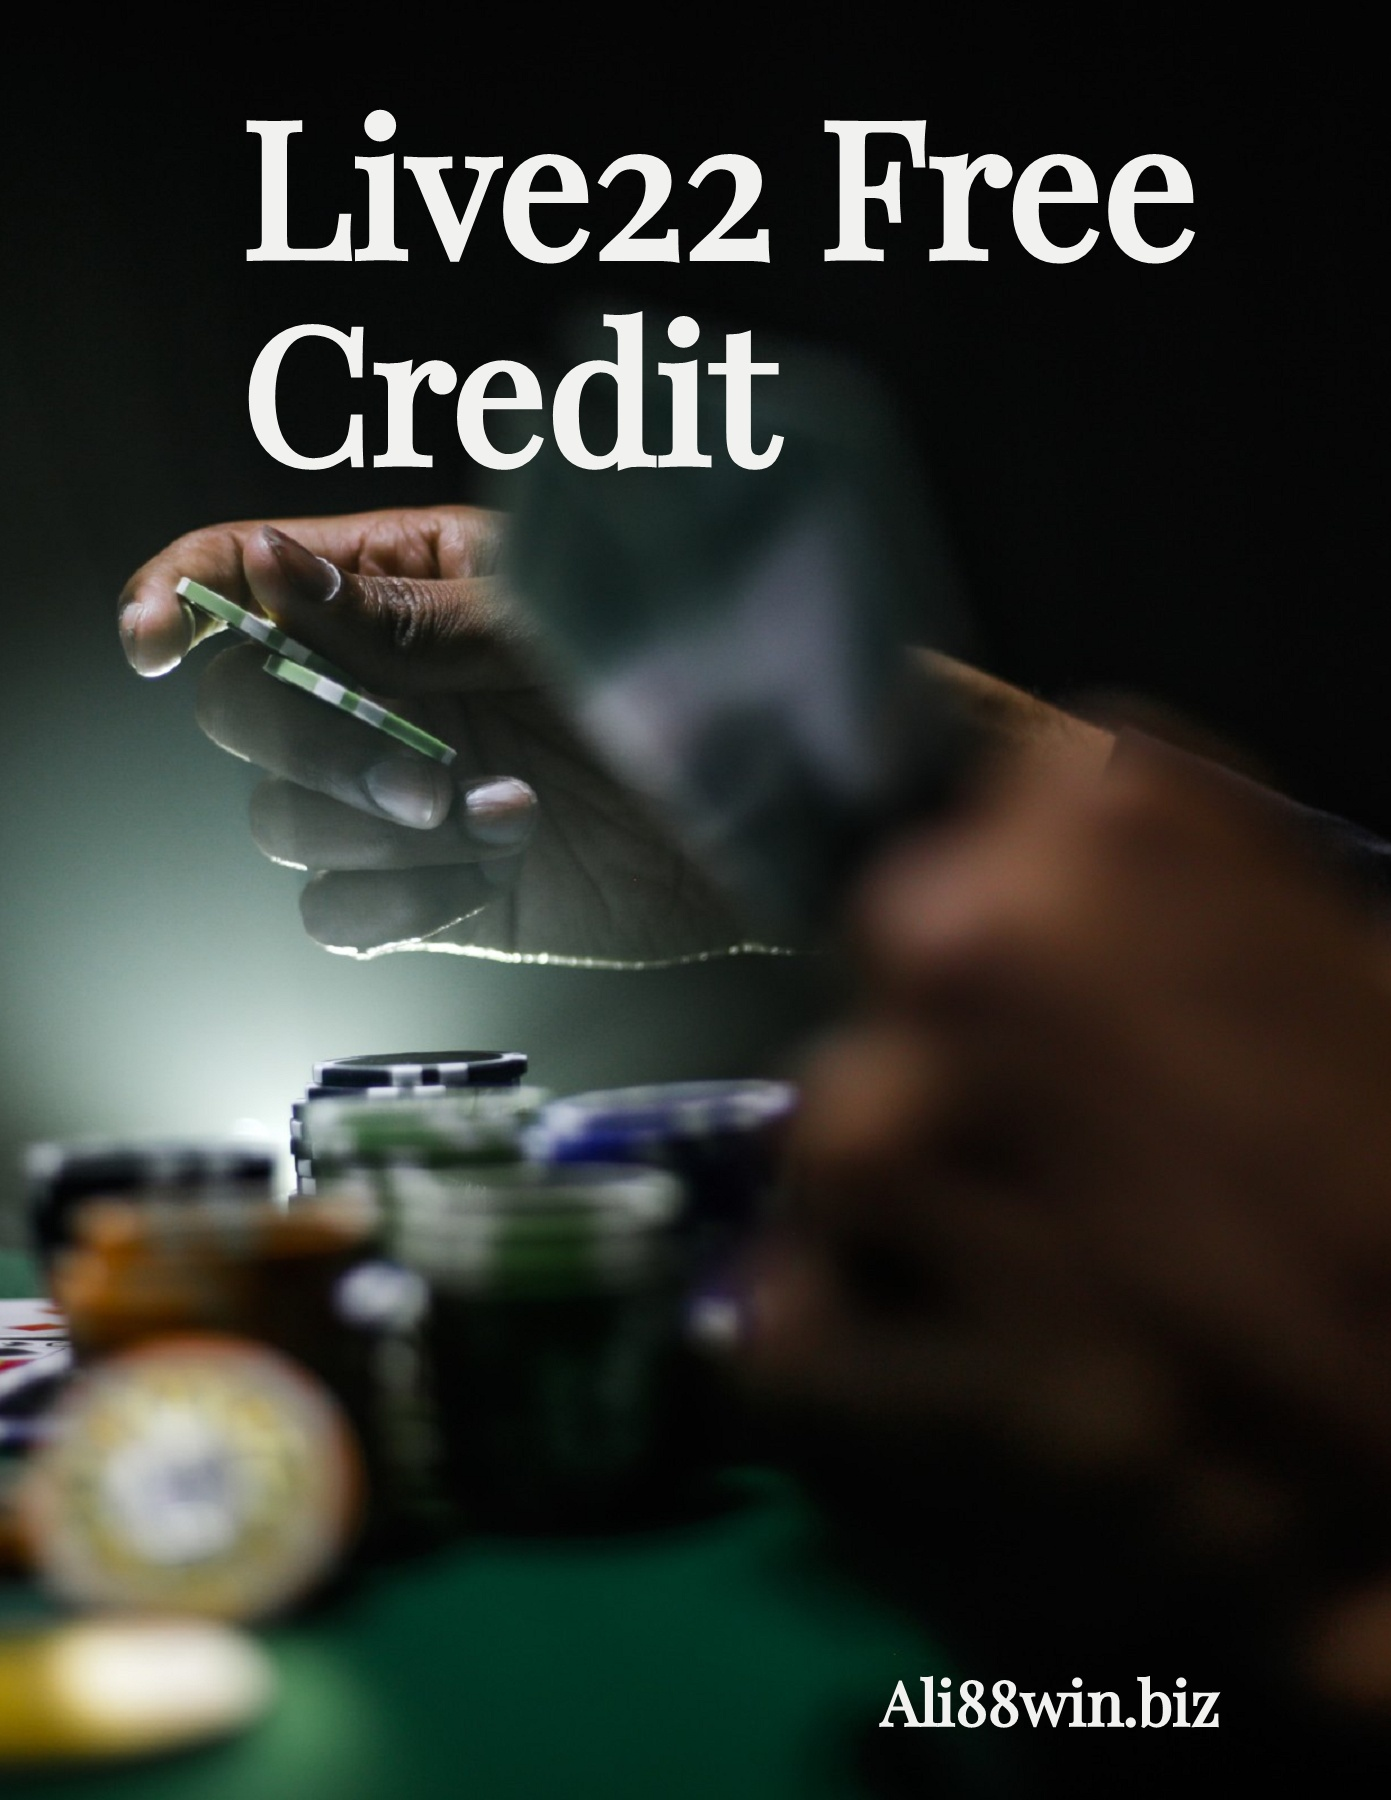 Live22 Free Credit Flip Ebook Pages 1 11 Anyflip Anyflip